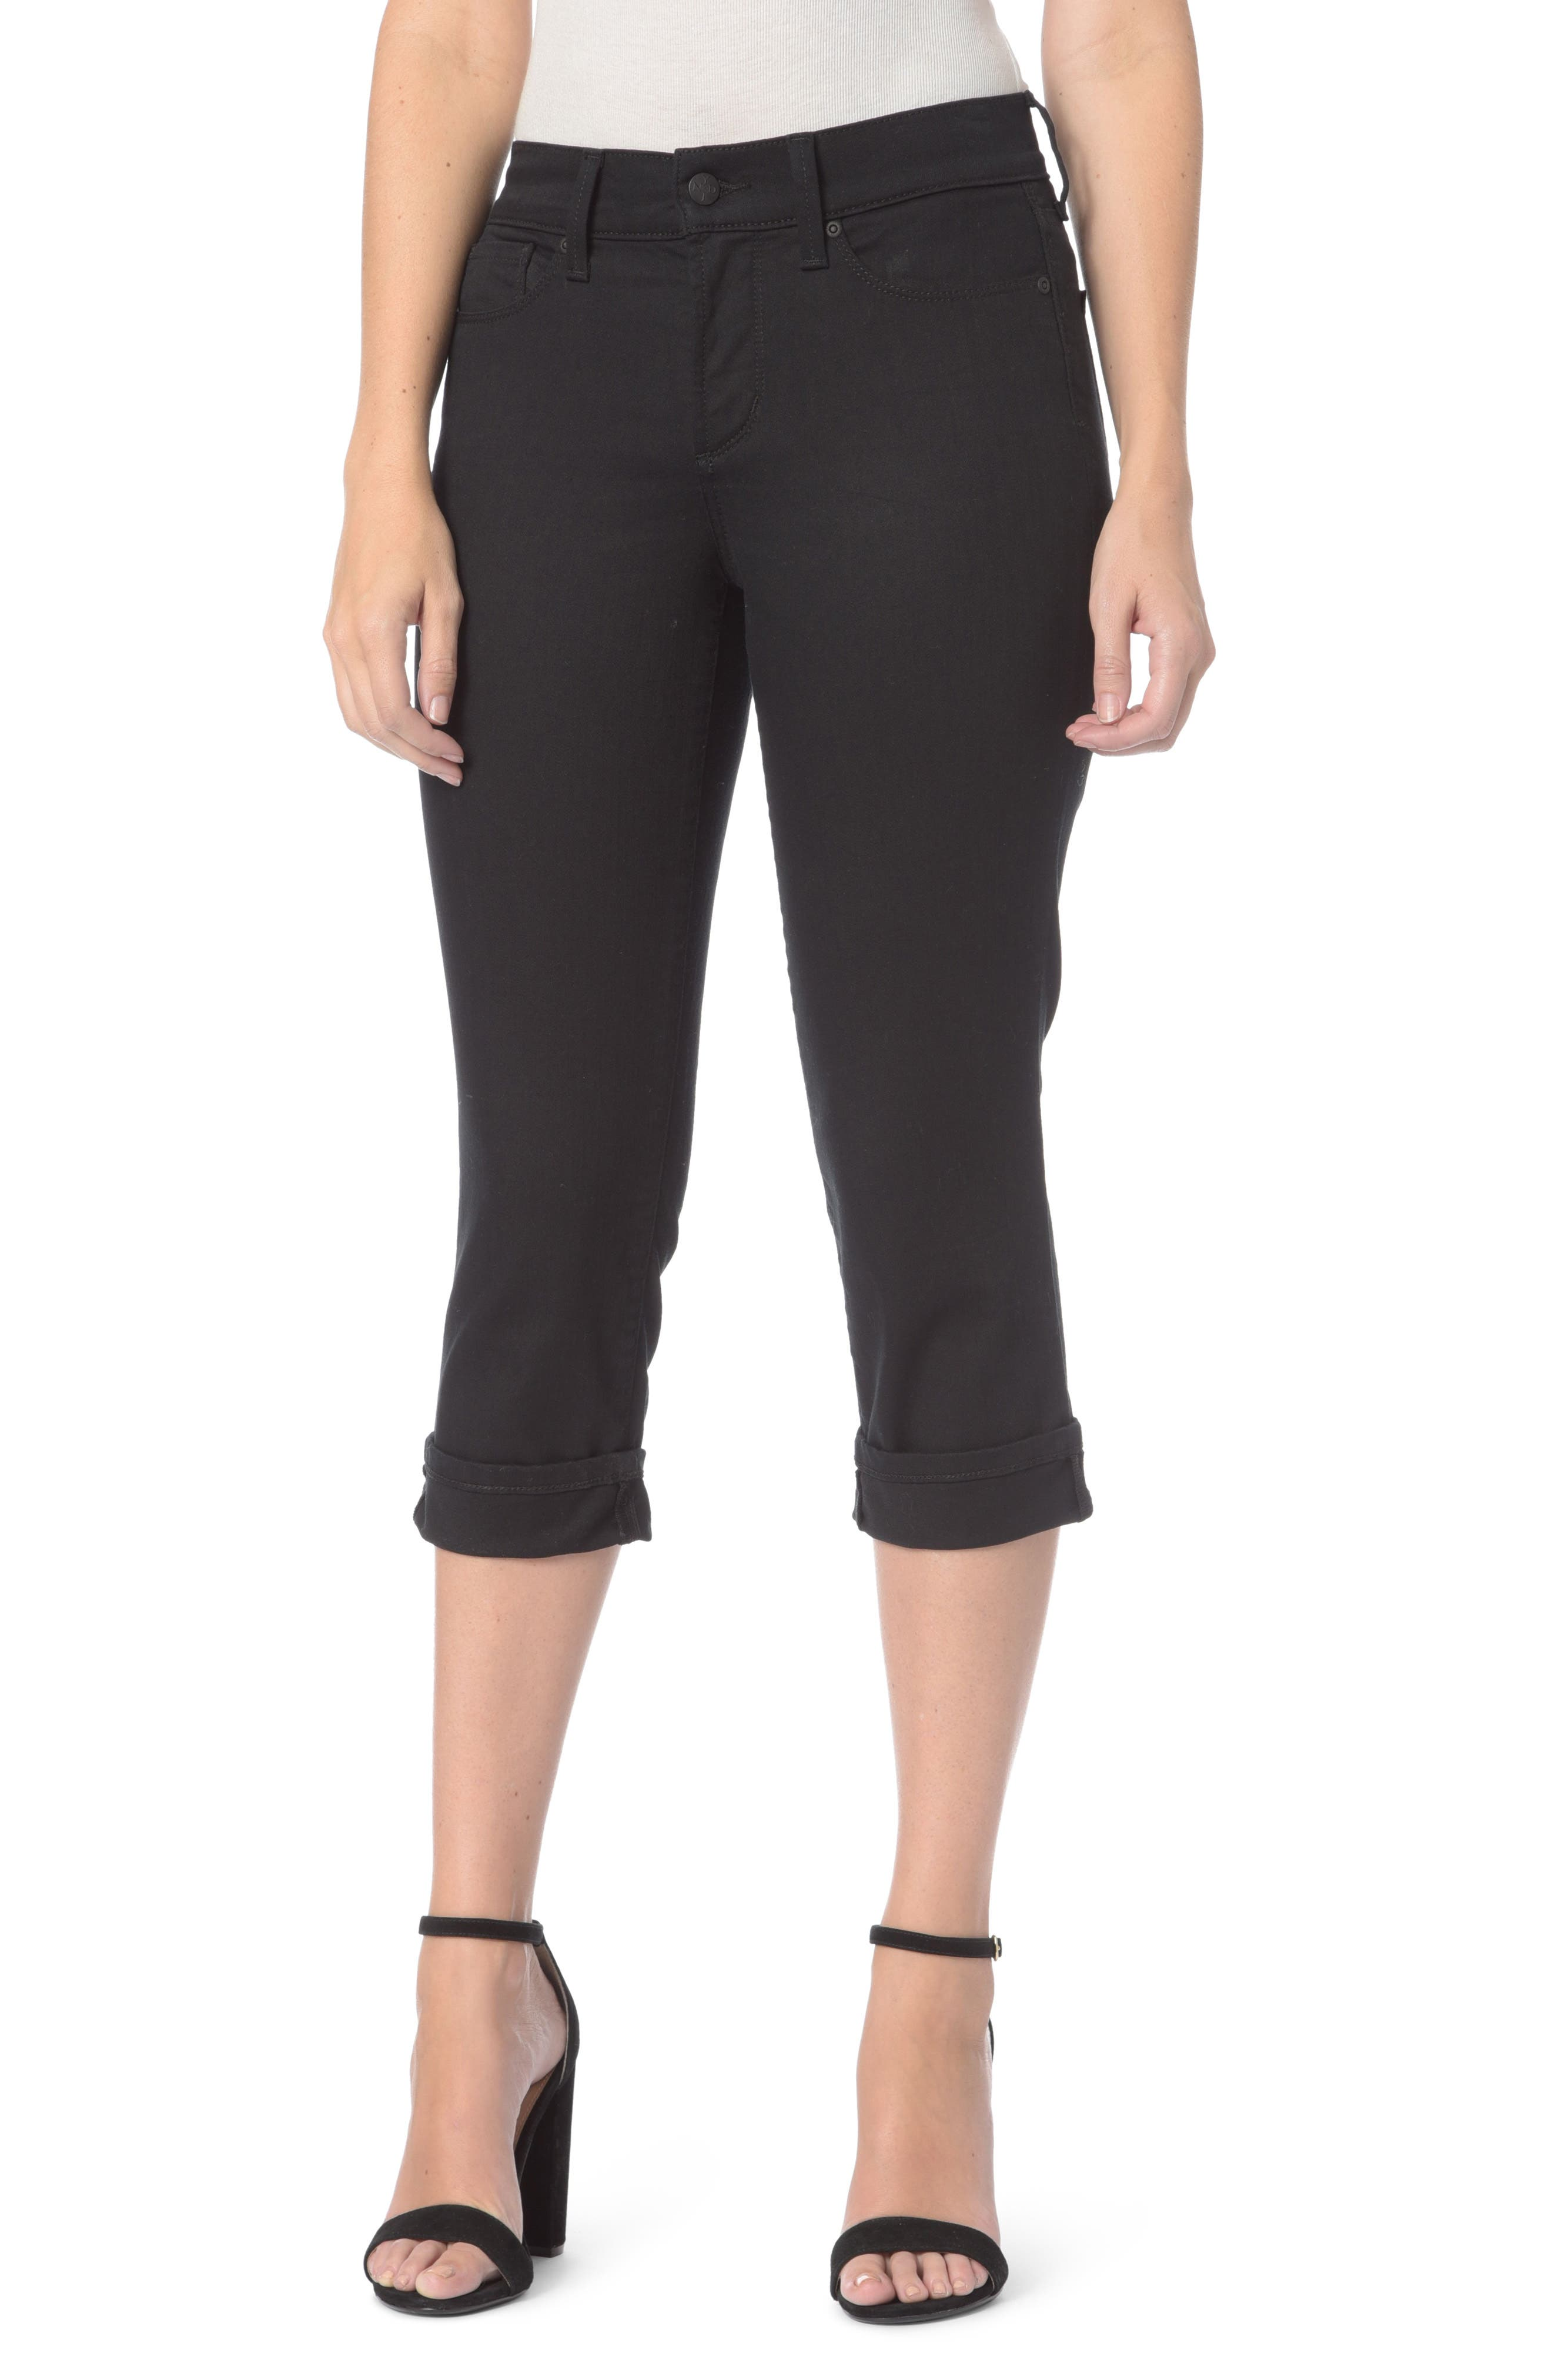 Alternate Image 1 Selected - NYDJ Marilyn Stretch Cuffed Crop Jeans